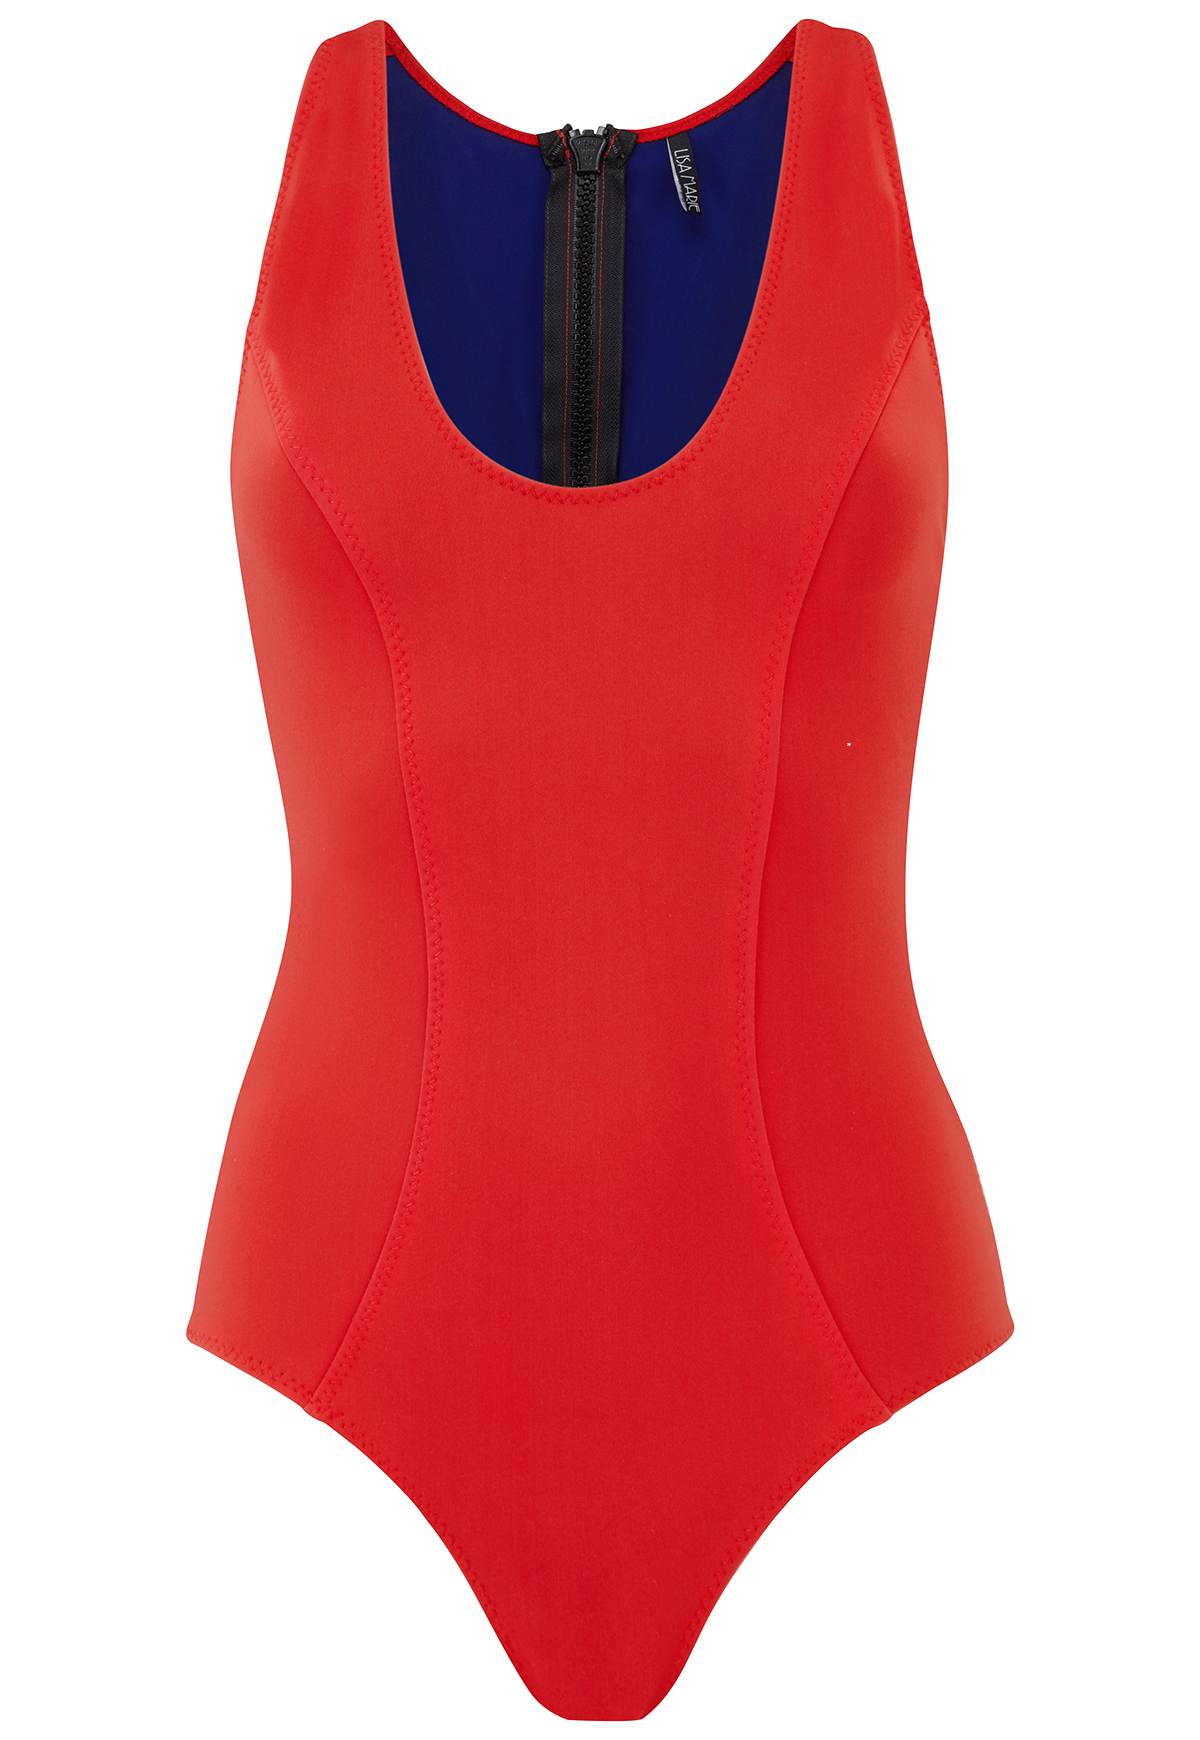 GARANCE RED BONDED MAILLOT